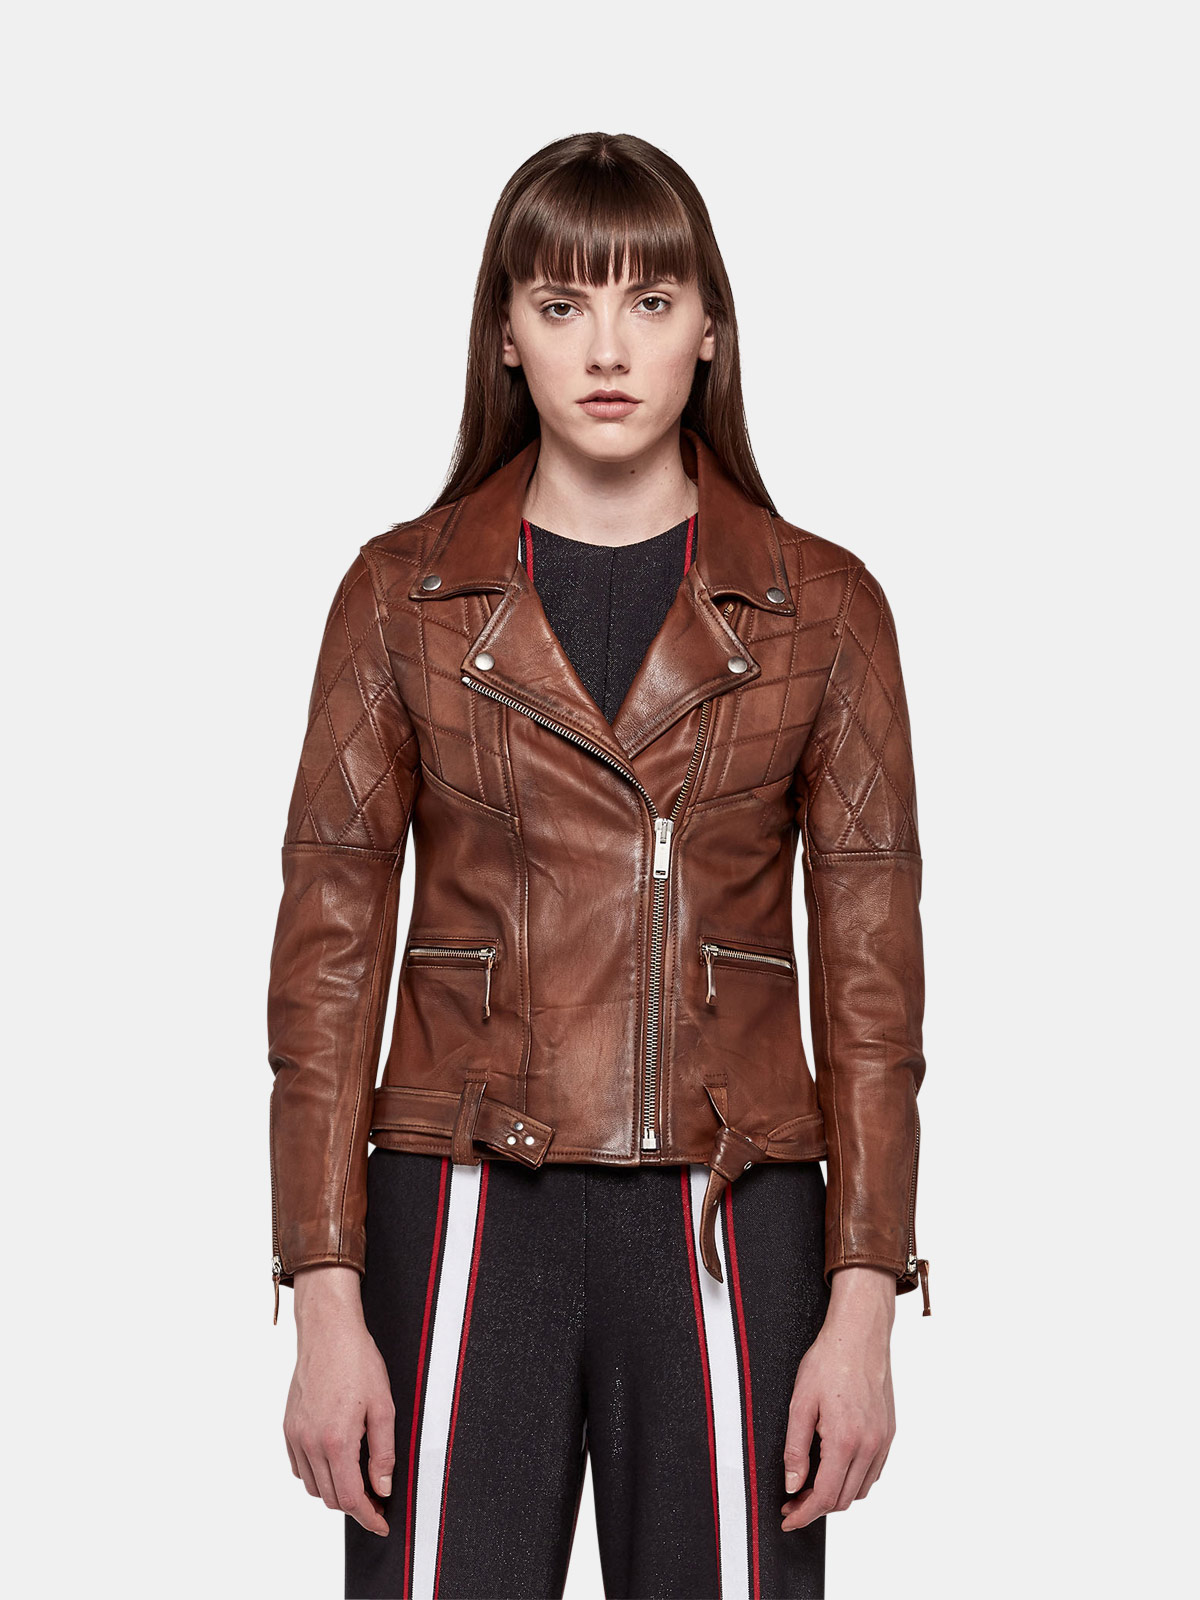 Golden Goose - Yasu biker jacket in brown nappa leather with star print in